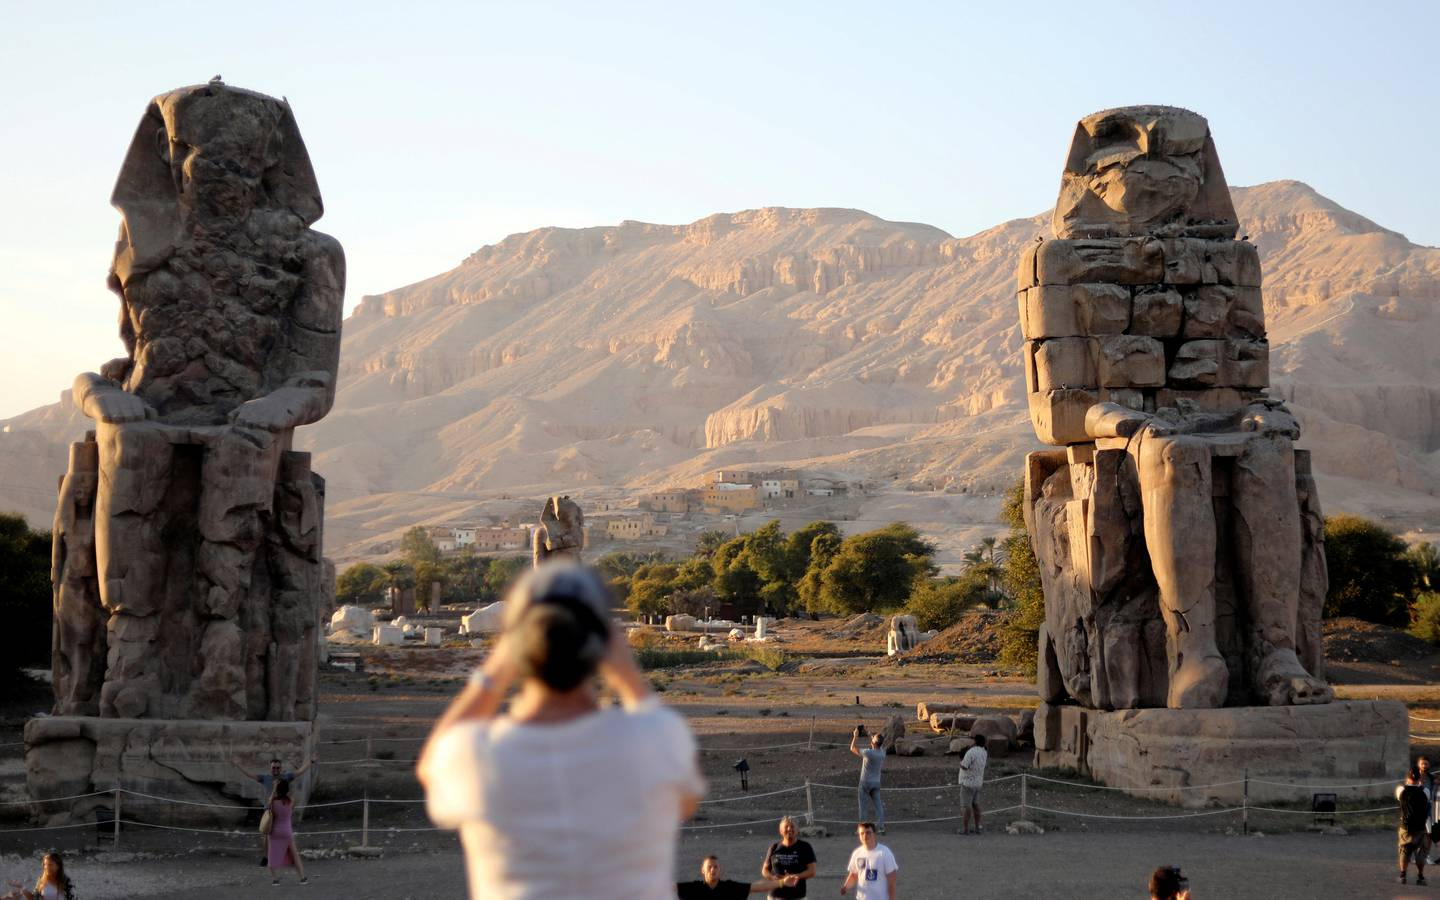 Tourists visit the Colossi of Memnon, the ruins of two stone statues that guarded the mortuary temple built for Pharaoh Amenhotep III, in Luxor, Egypt November 25, 2018. REUTERS/Mohamed Abd El Ghany